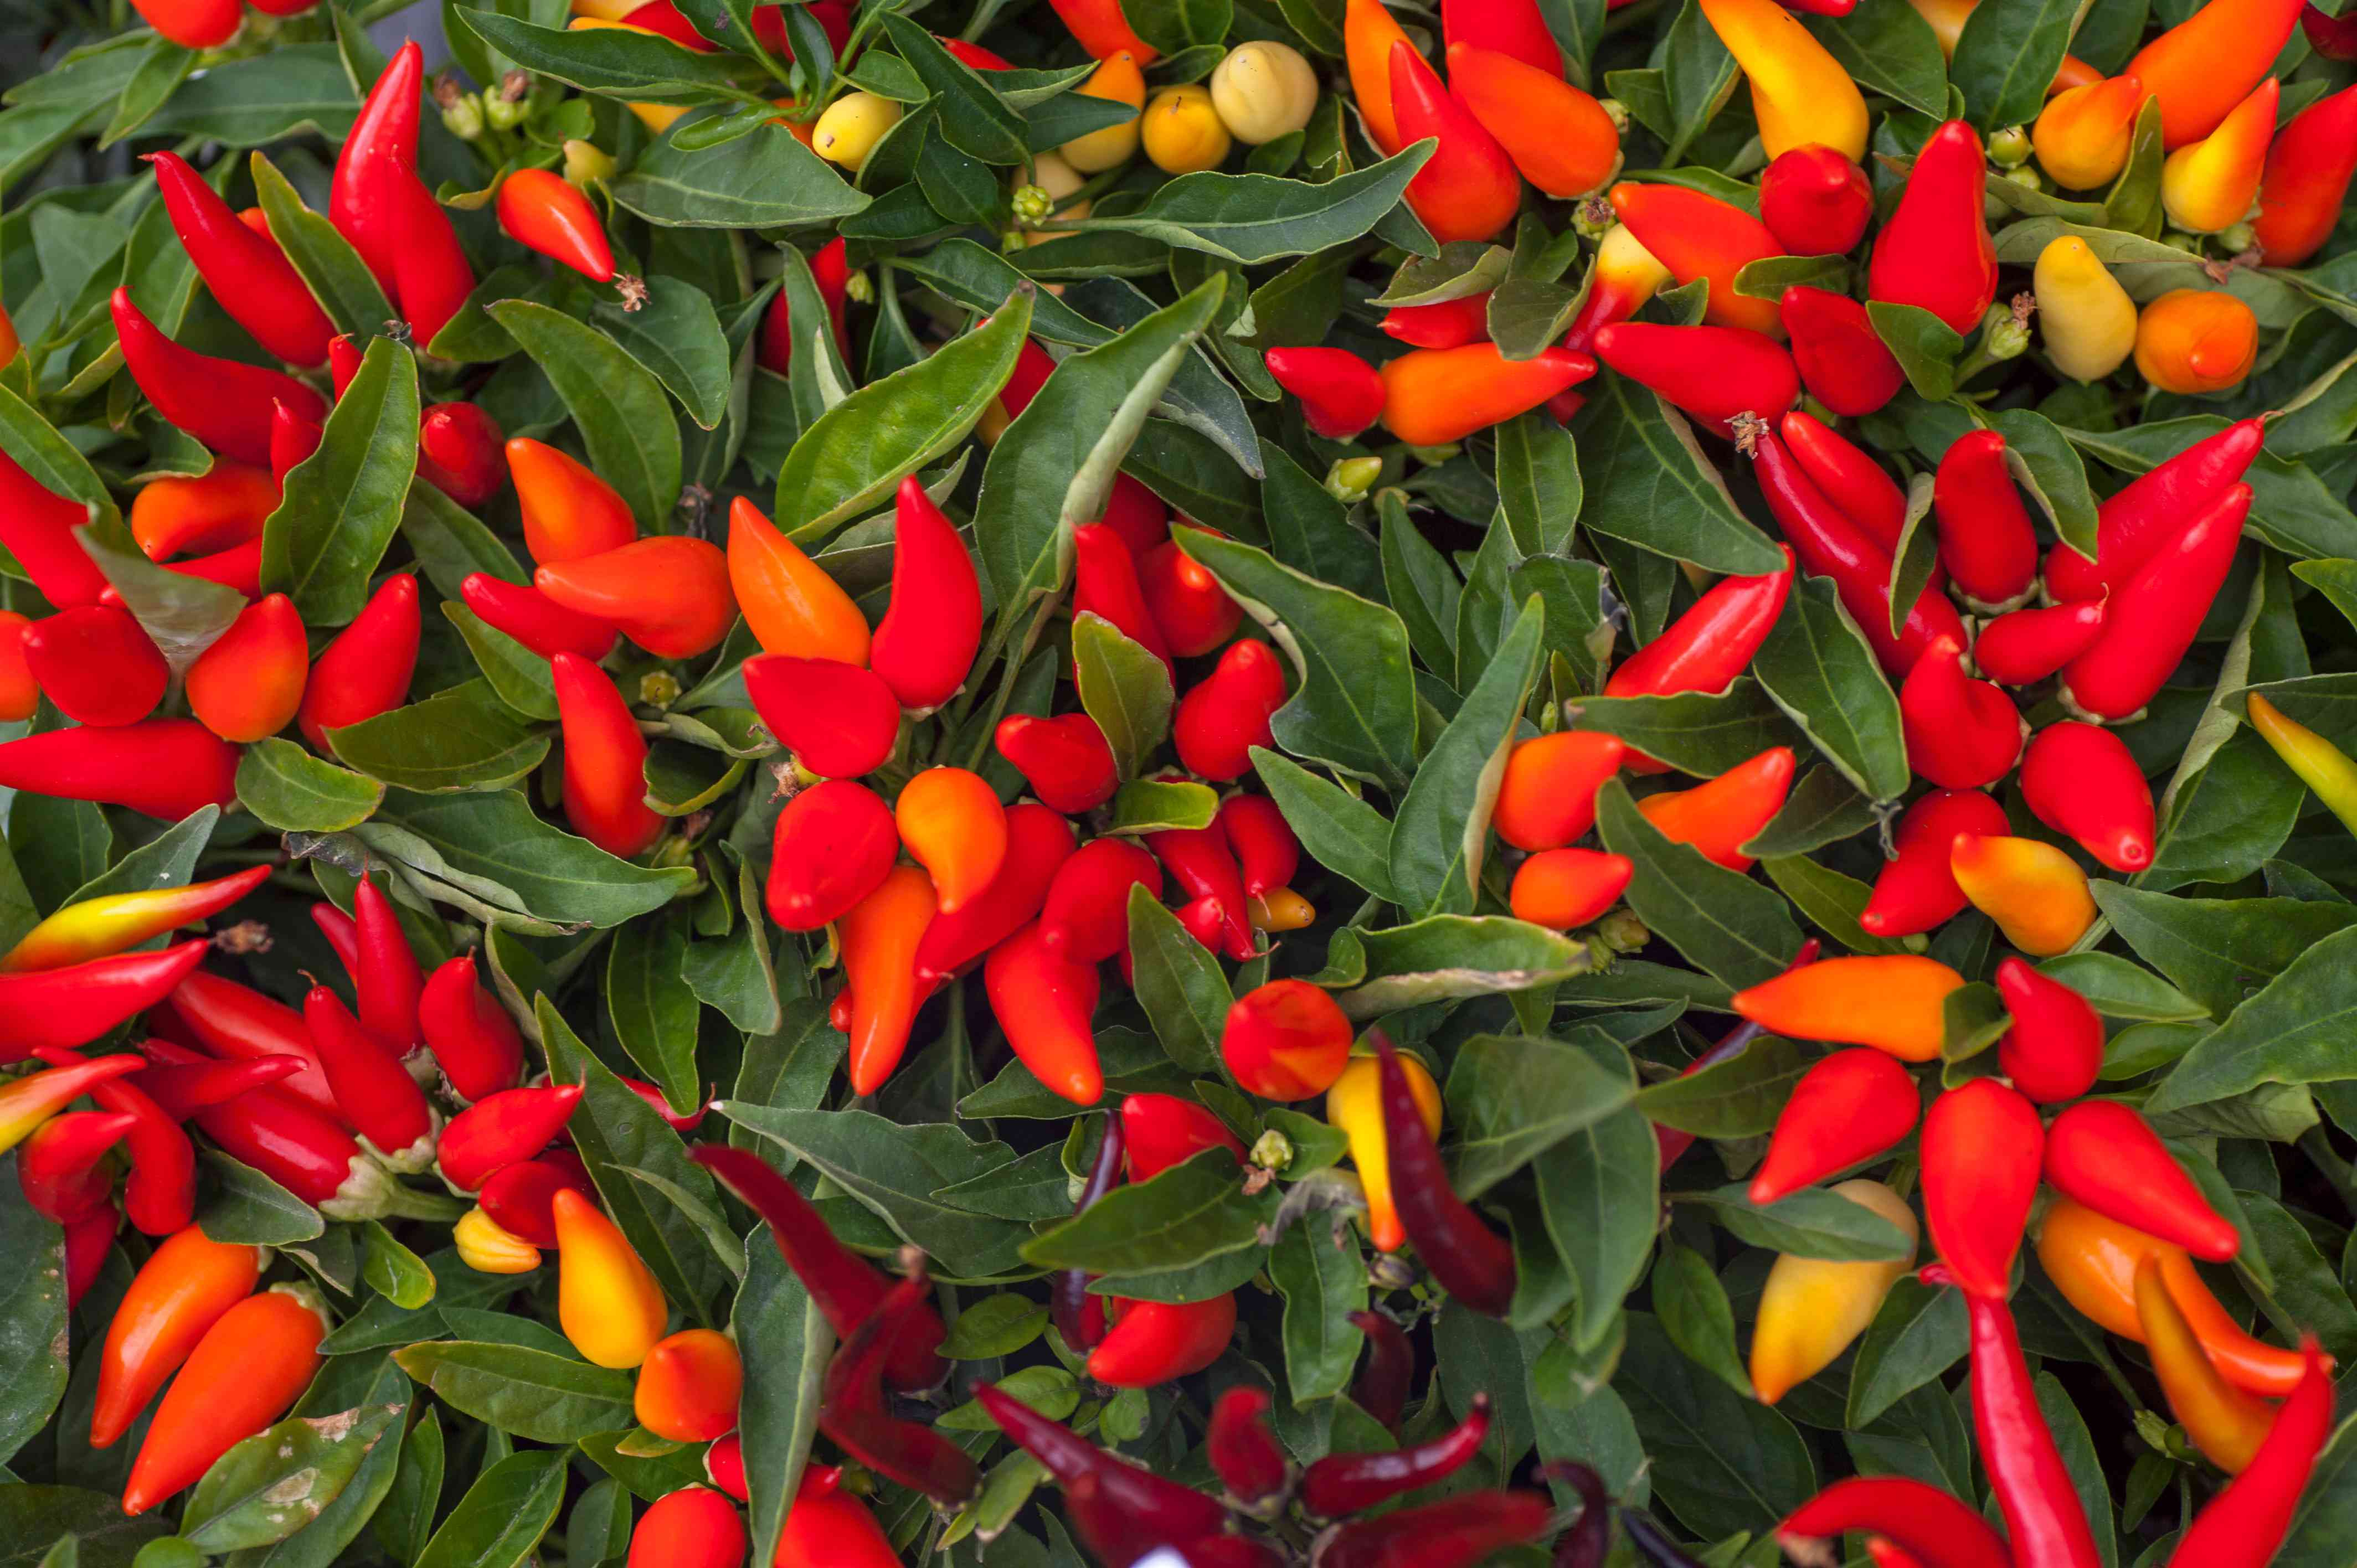 Ornamental pepper plant with pointed red and orange peppers clustered between long leaves